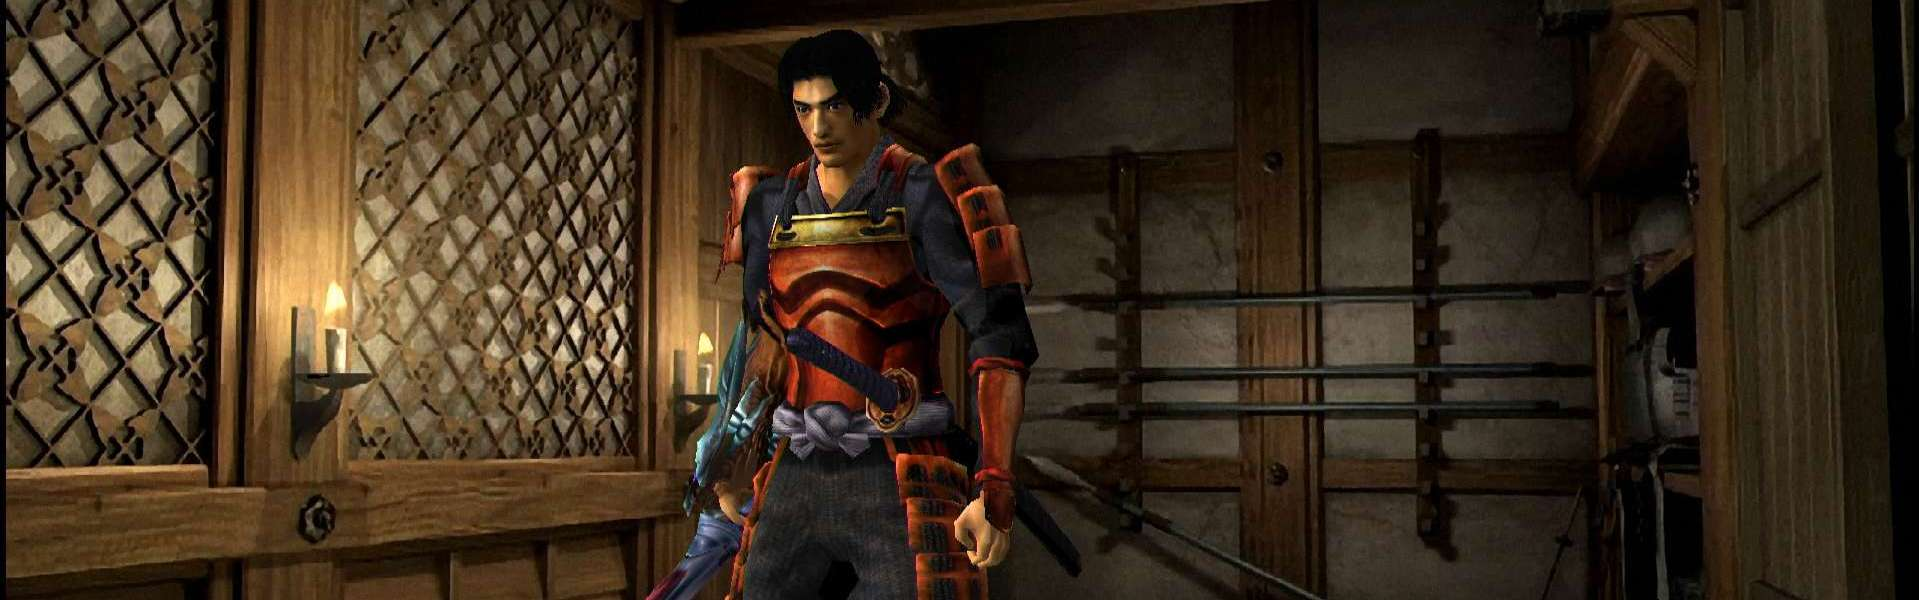 Onimusha: Warlords / 鬼武者  Steam Key EMEA/NORTH AMERICA/ASIA